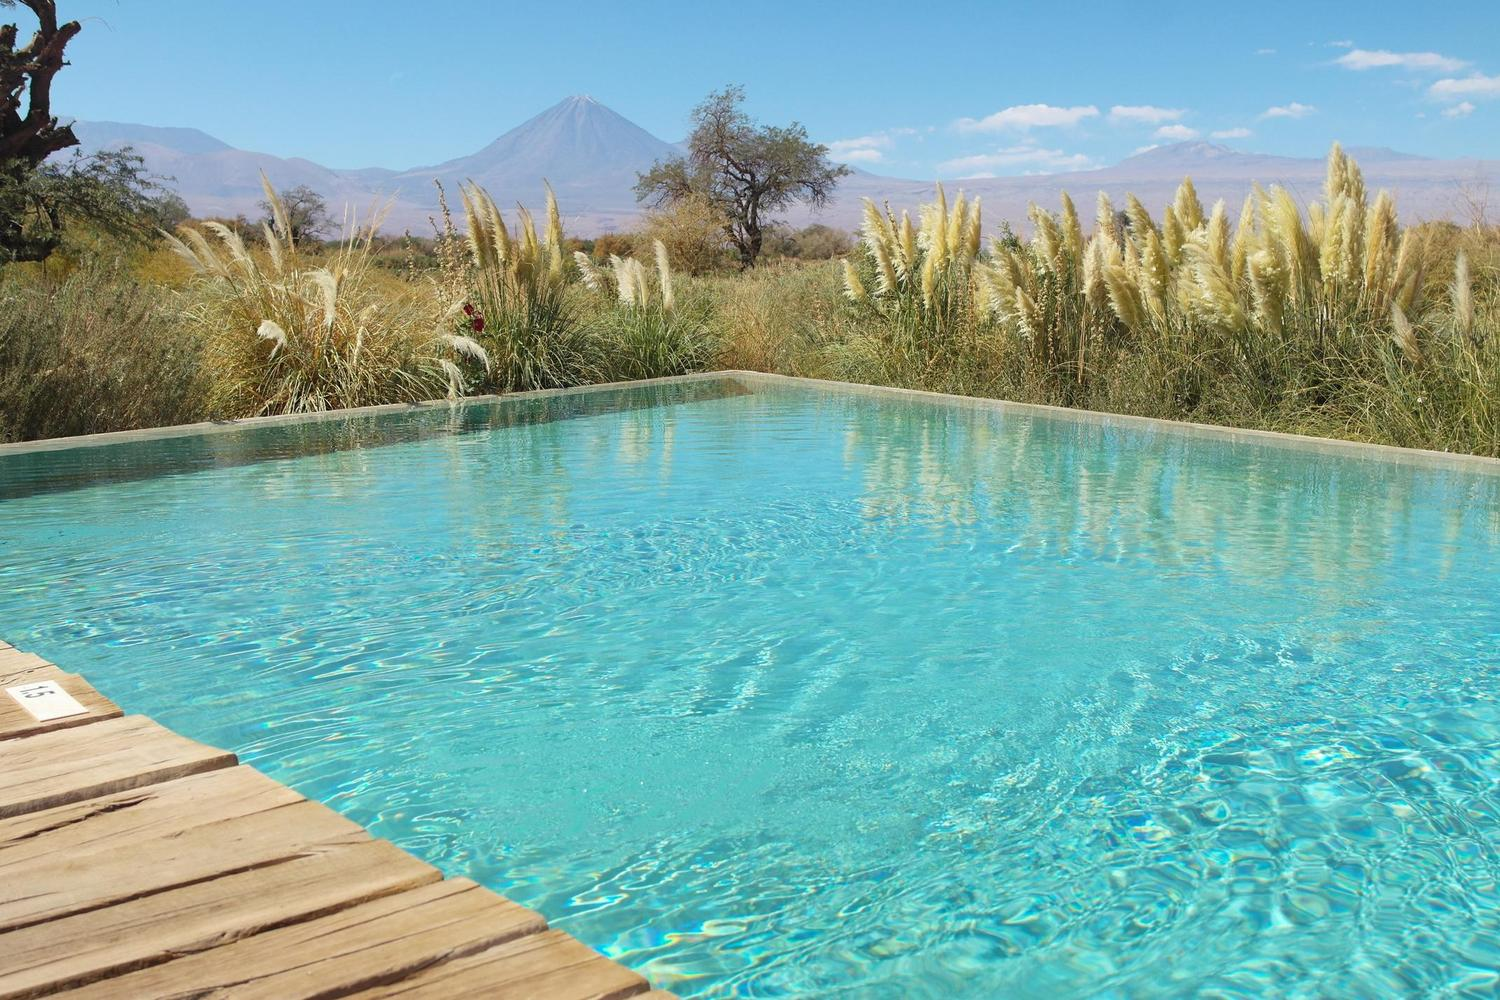 The pool area of the Tierra Atacama Lodge